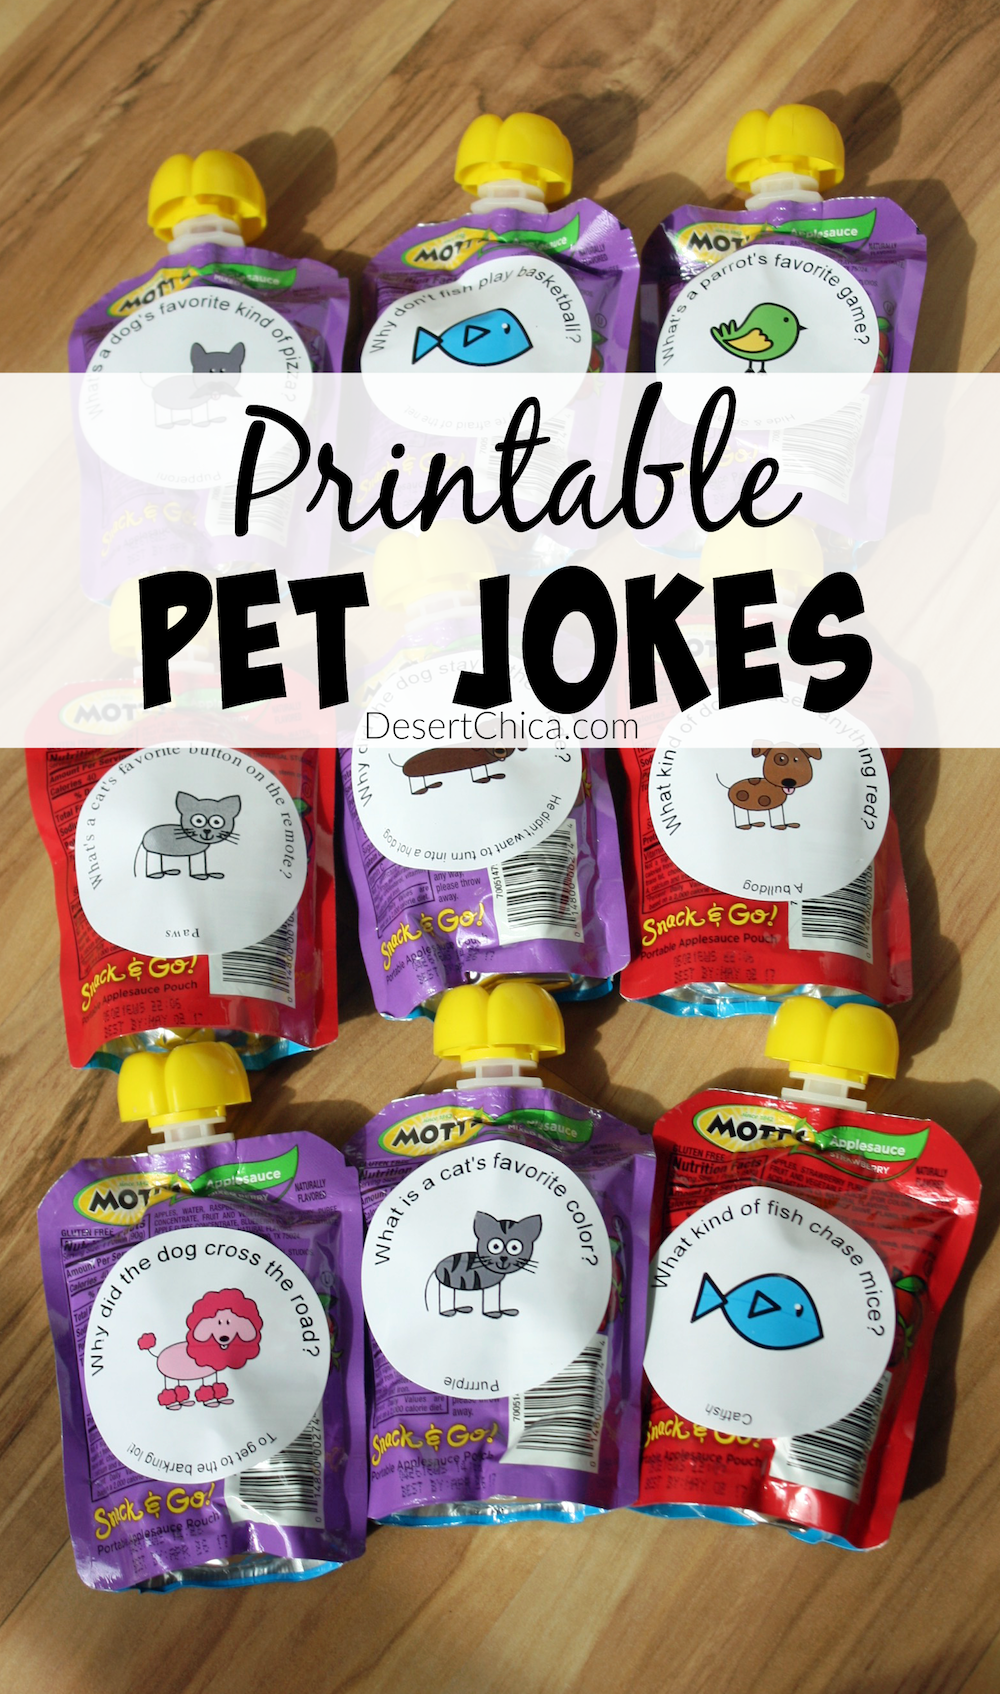 Printable Pet Jokes for a Pet themed party